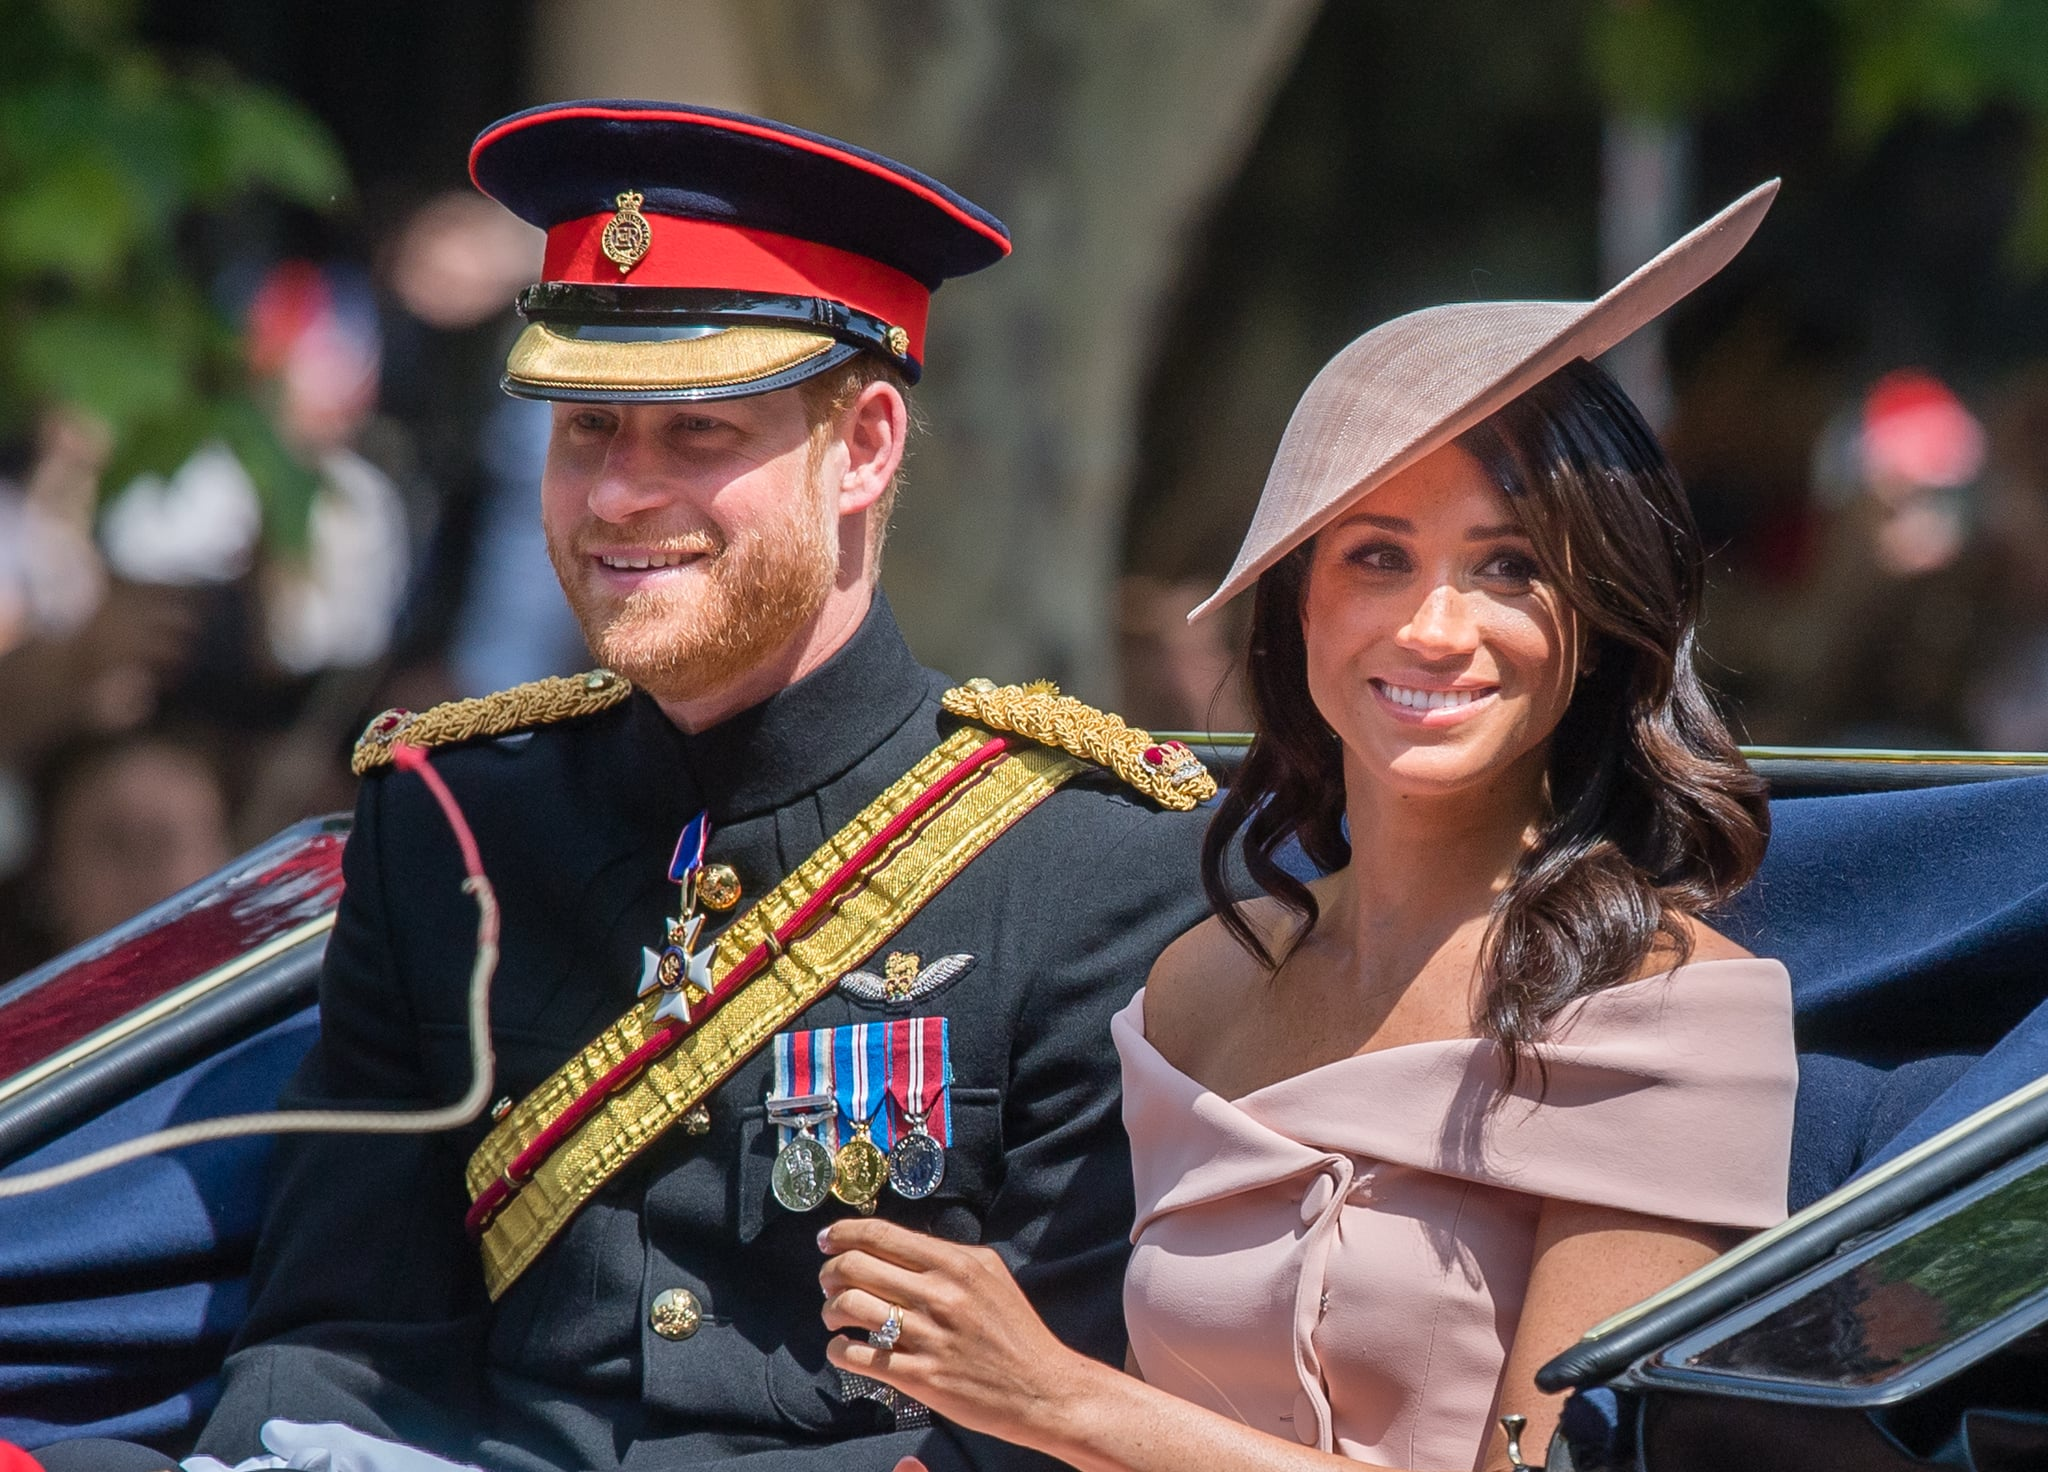 LONDON, ENGLAND - JUNE 09:  Prince Harry, Duke of Sussex and Meghan, Duchess of Sussex ride by carriage during Trooping The Colour 2018 on the Mall on June 9, 2018 in London, England.  (Photo by Samir Hussein/Samir Hussein/WireImage)